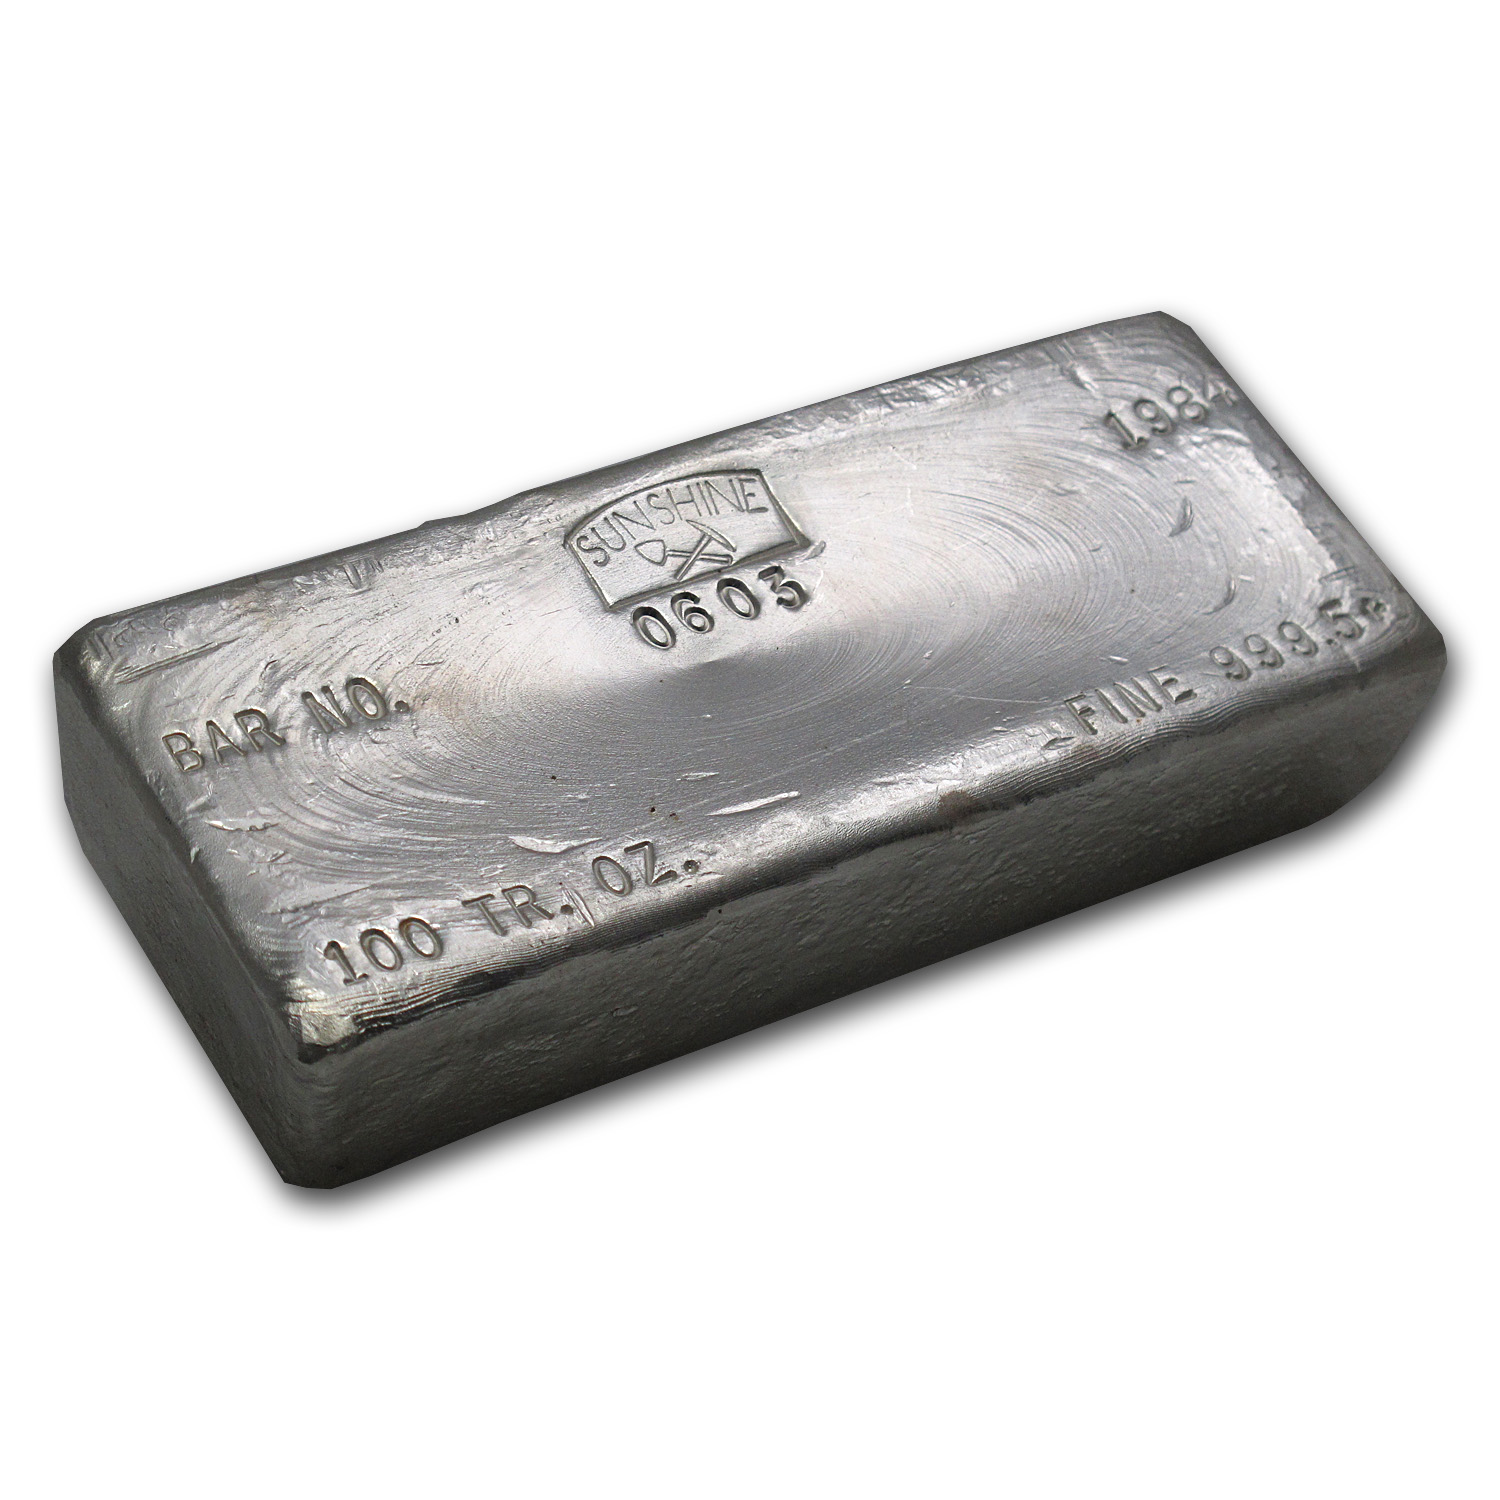 100 oz Silver Bar - Sunshine (Vintage, Poured)